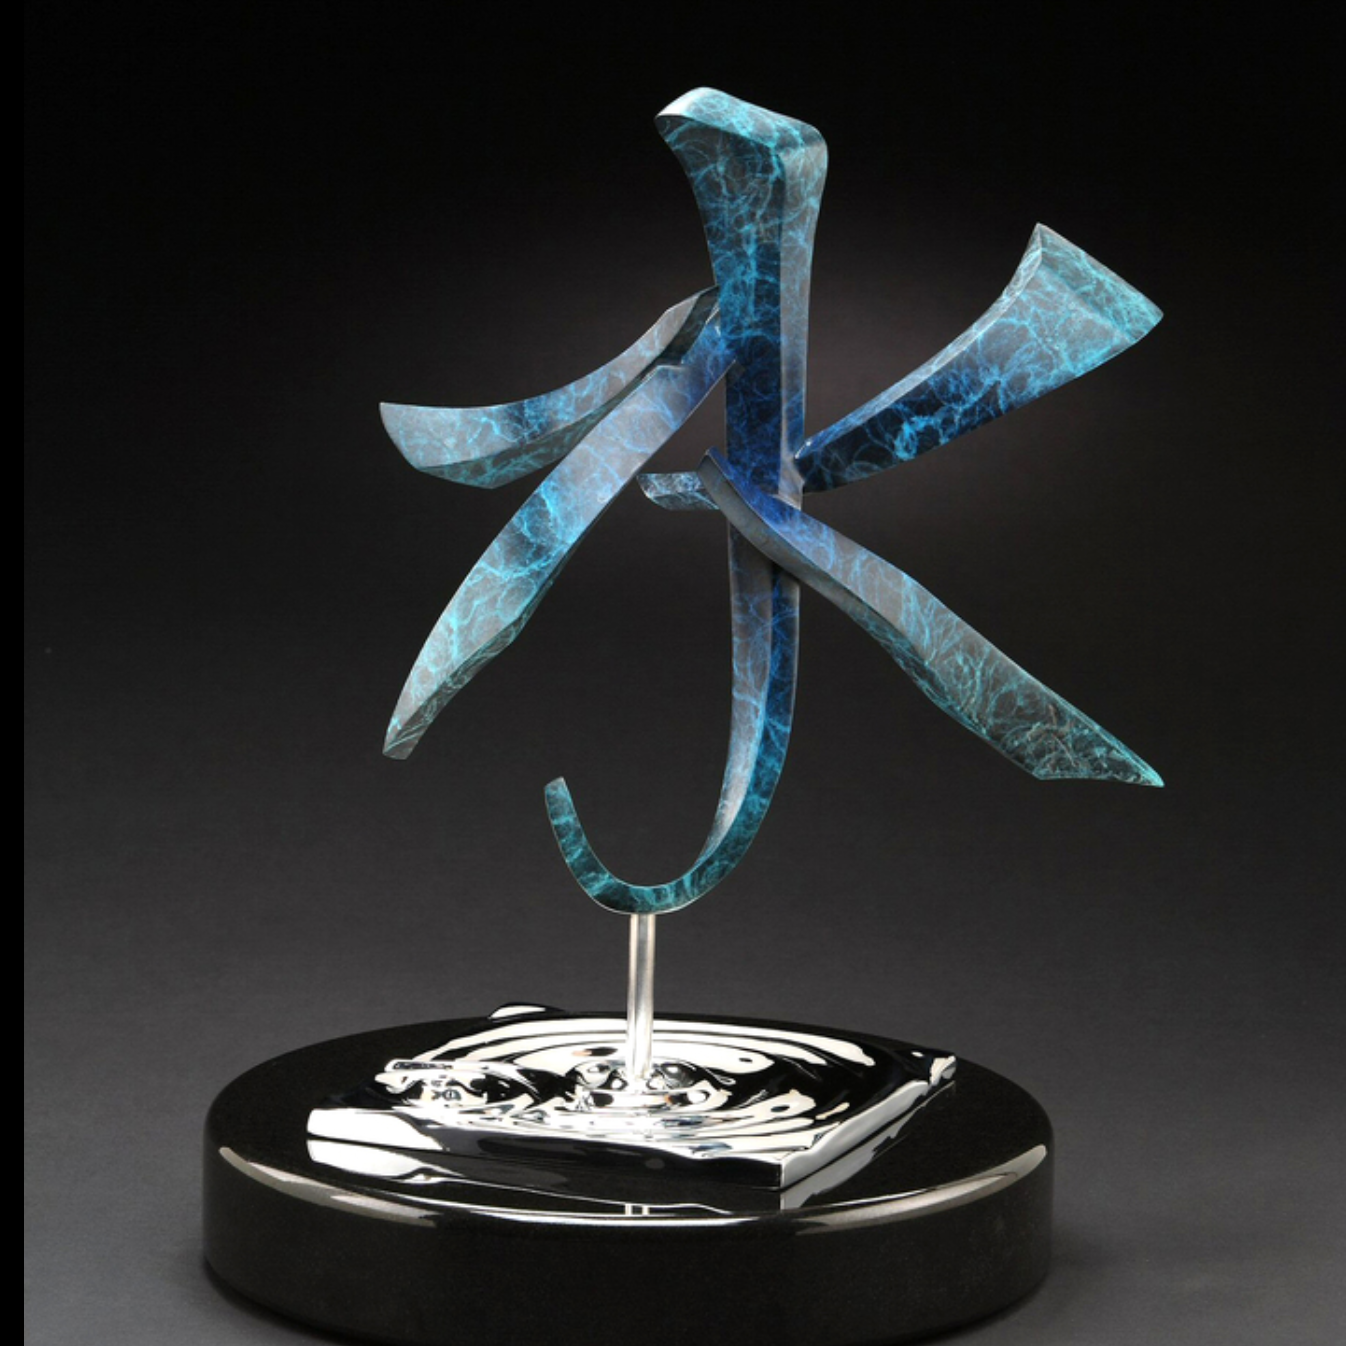 Casey Horn - http://raitmanart.comCasey Horn's works in bronze, steel, aluminum and more capture Kanji characters in three-dimensional form. While abstract in design, every piece has a very literal translation for the viewer.Casey is also featured in the Raitman Galleries on Main Street in Breckenridge